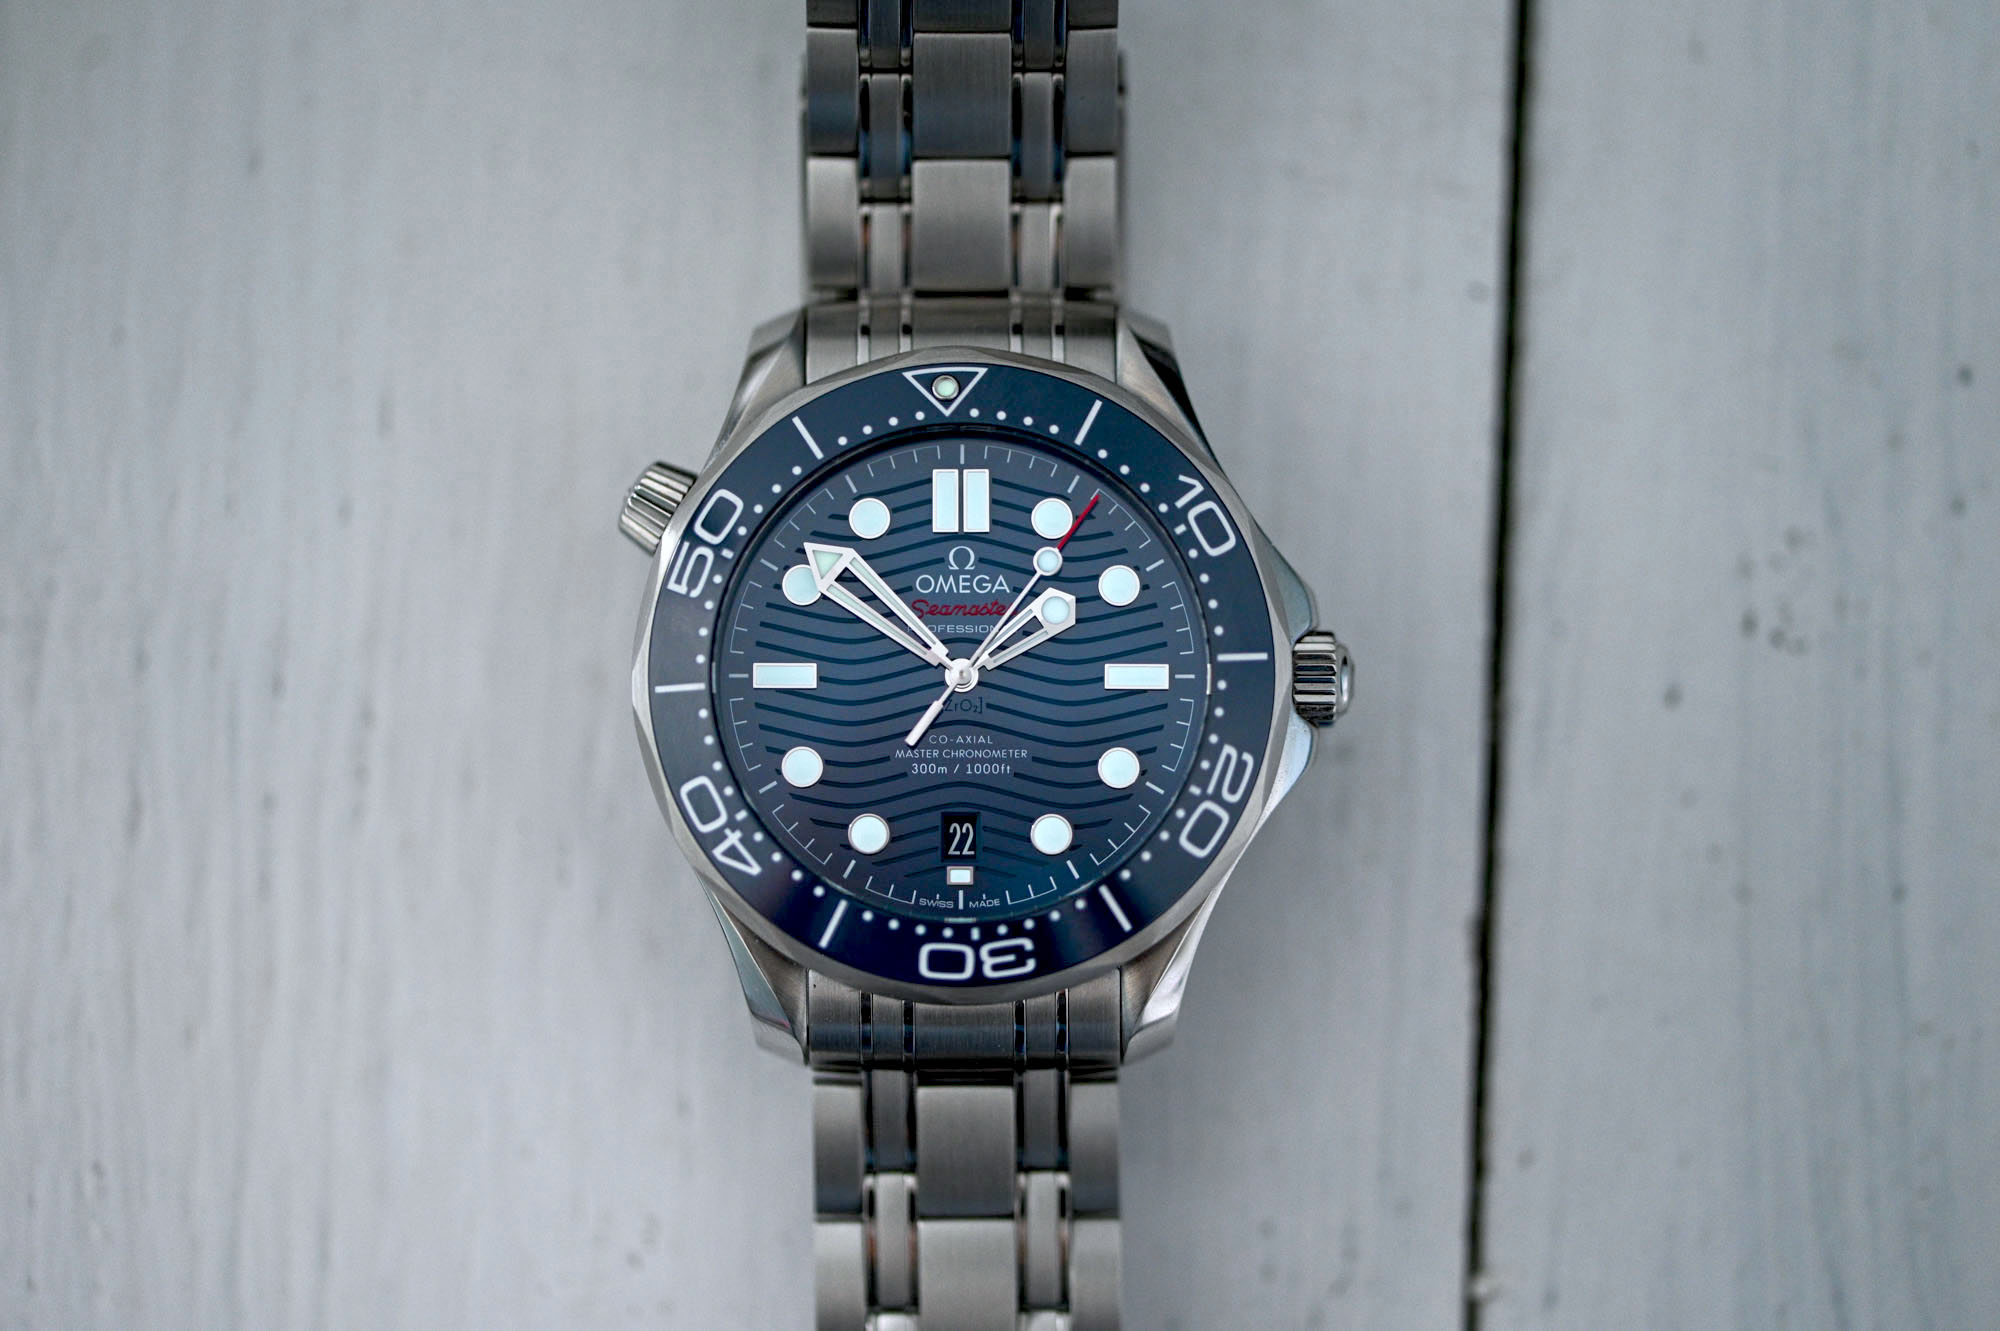 Omega Seamaster Diver 300M Master Chronometer video watch review